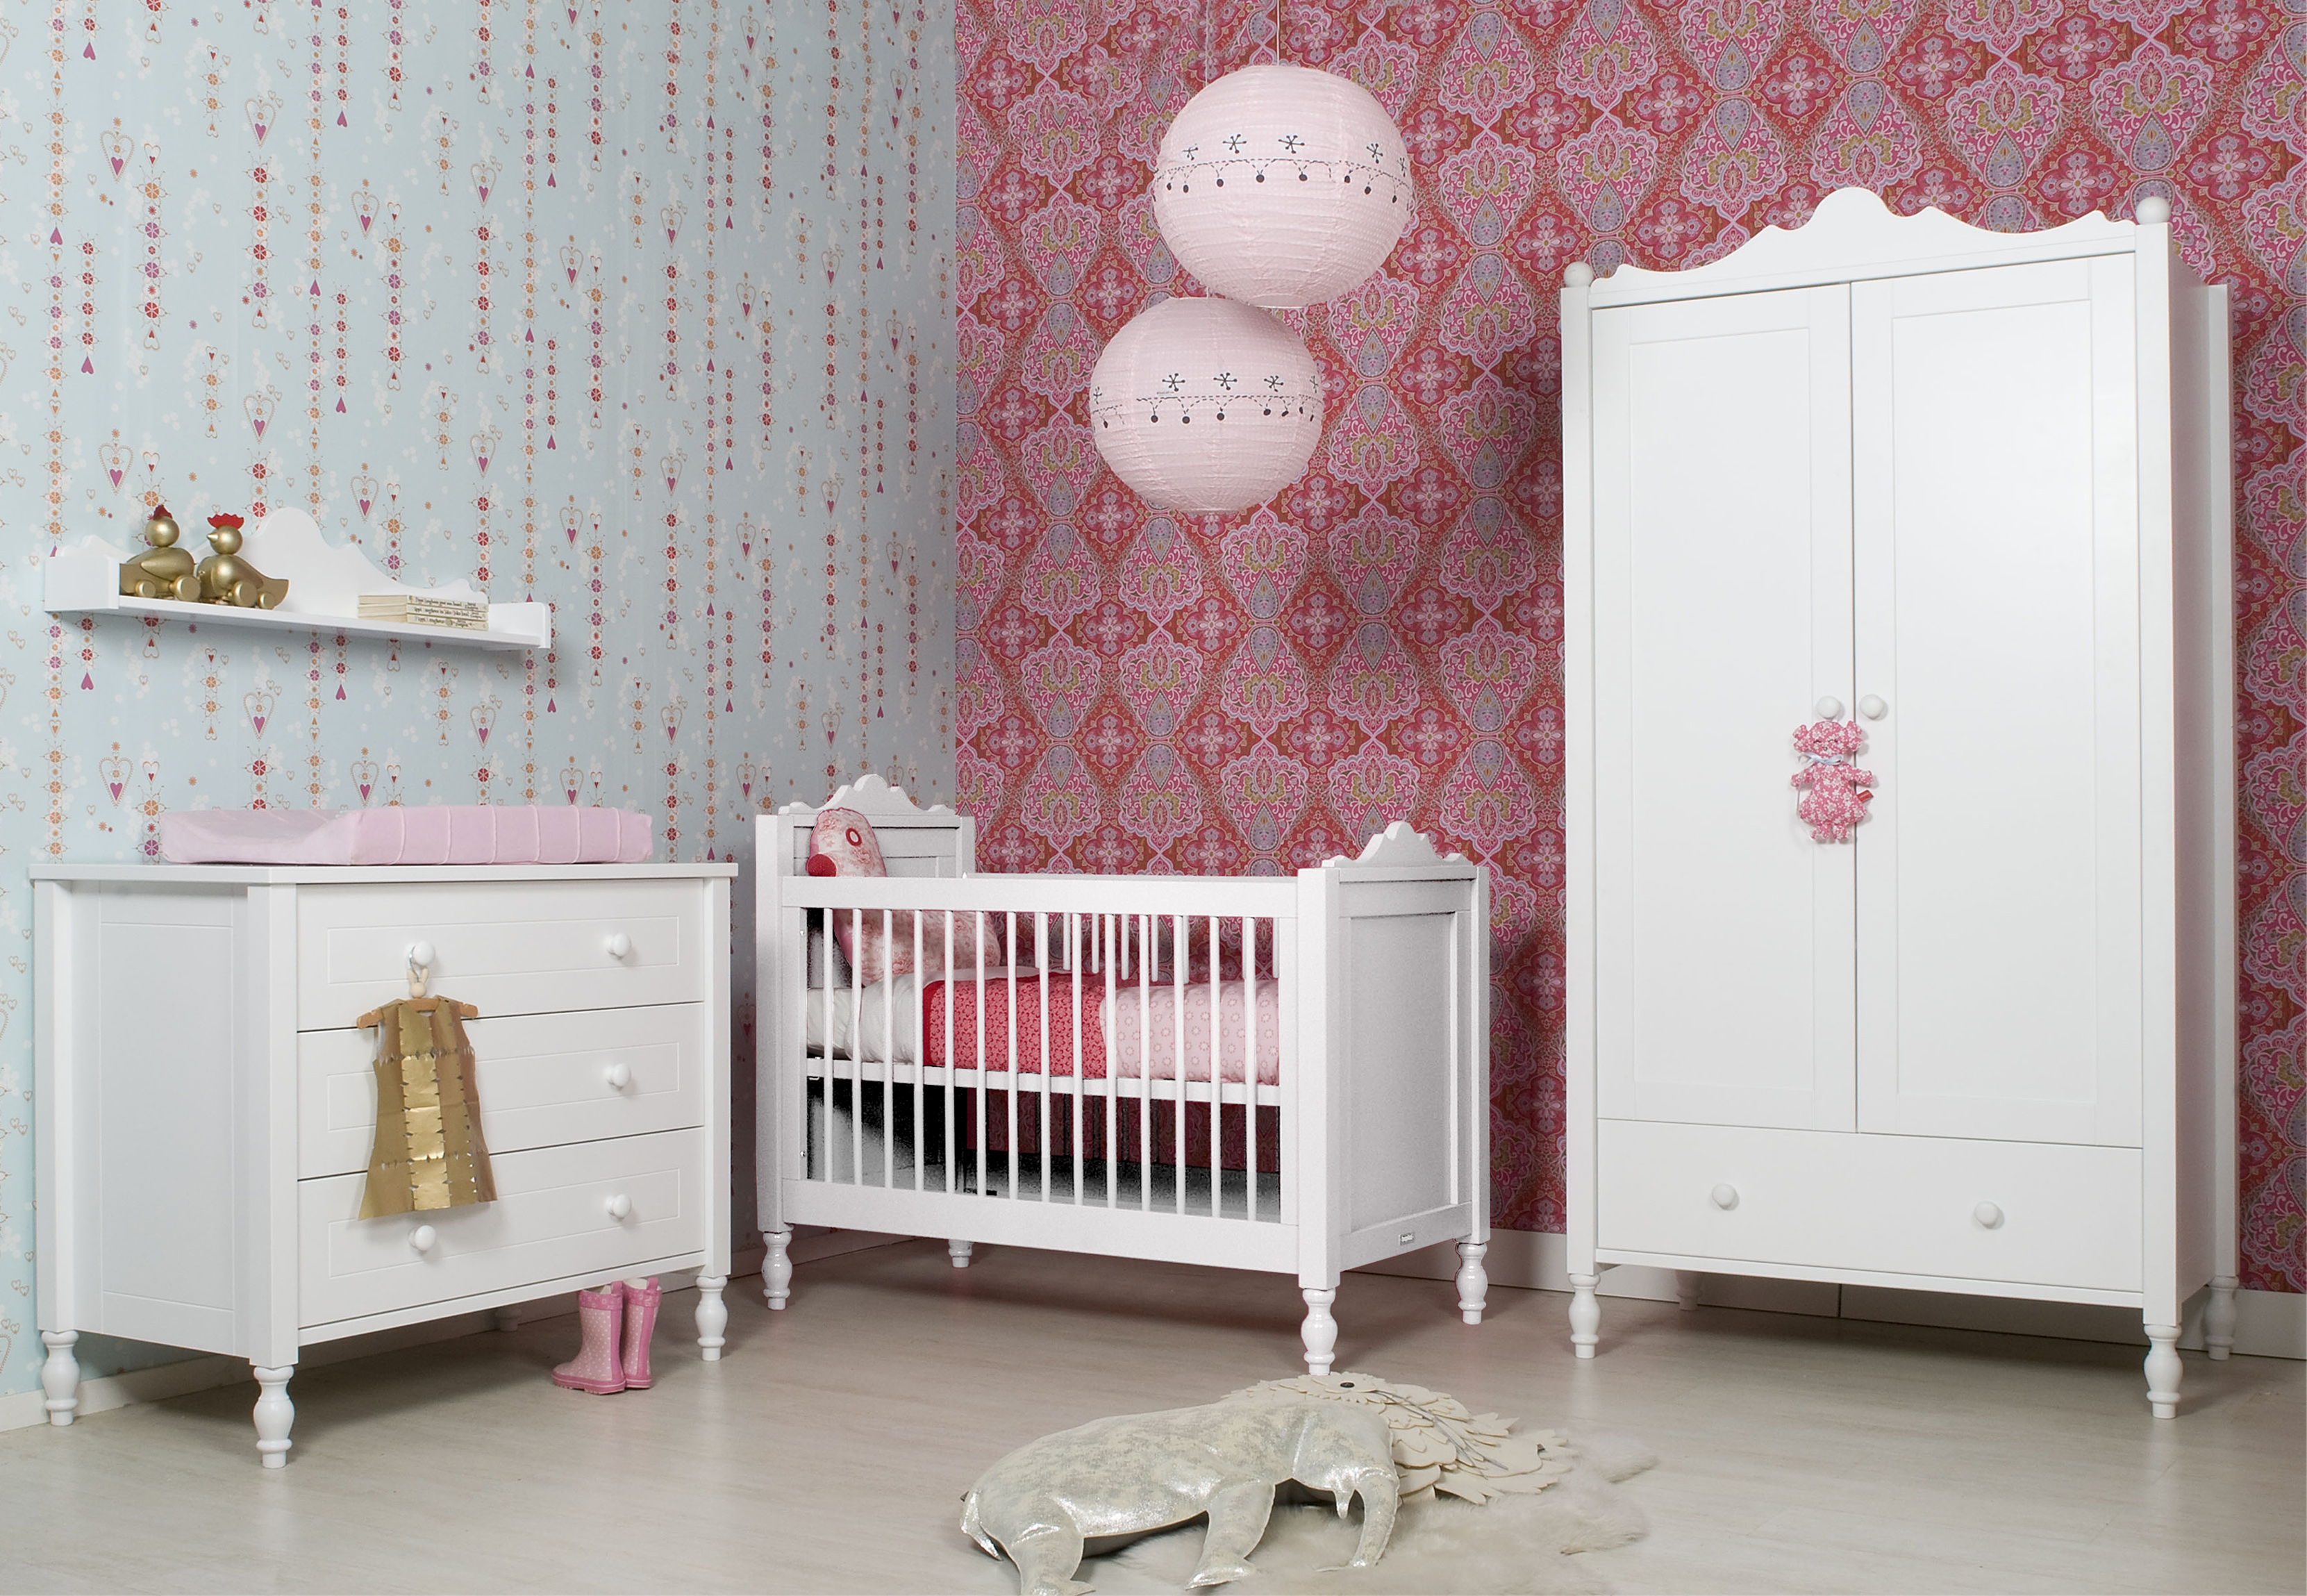 Slaapkamer gedichten baby need wall decor ideas - Baby slaapkamer deco ...